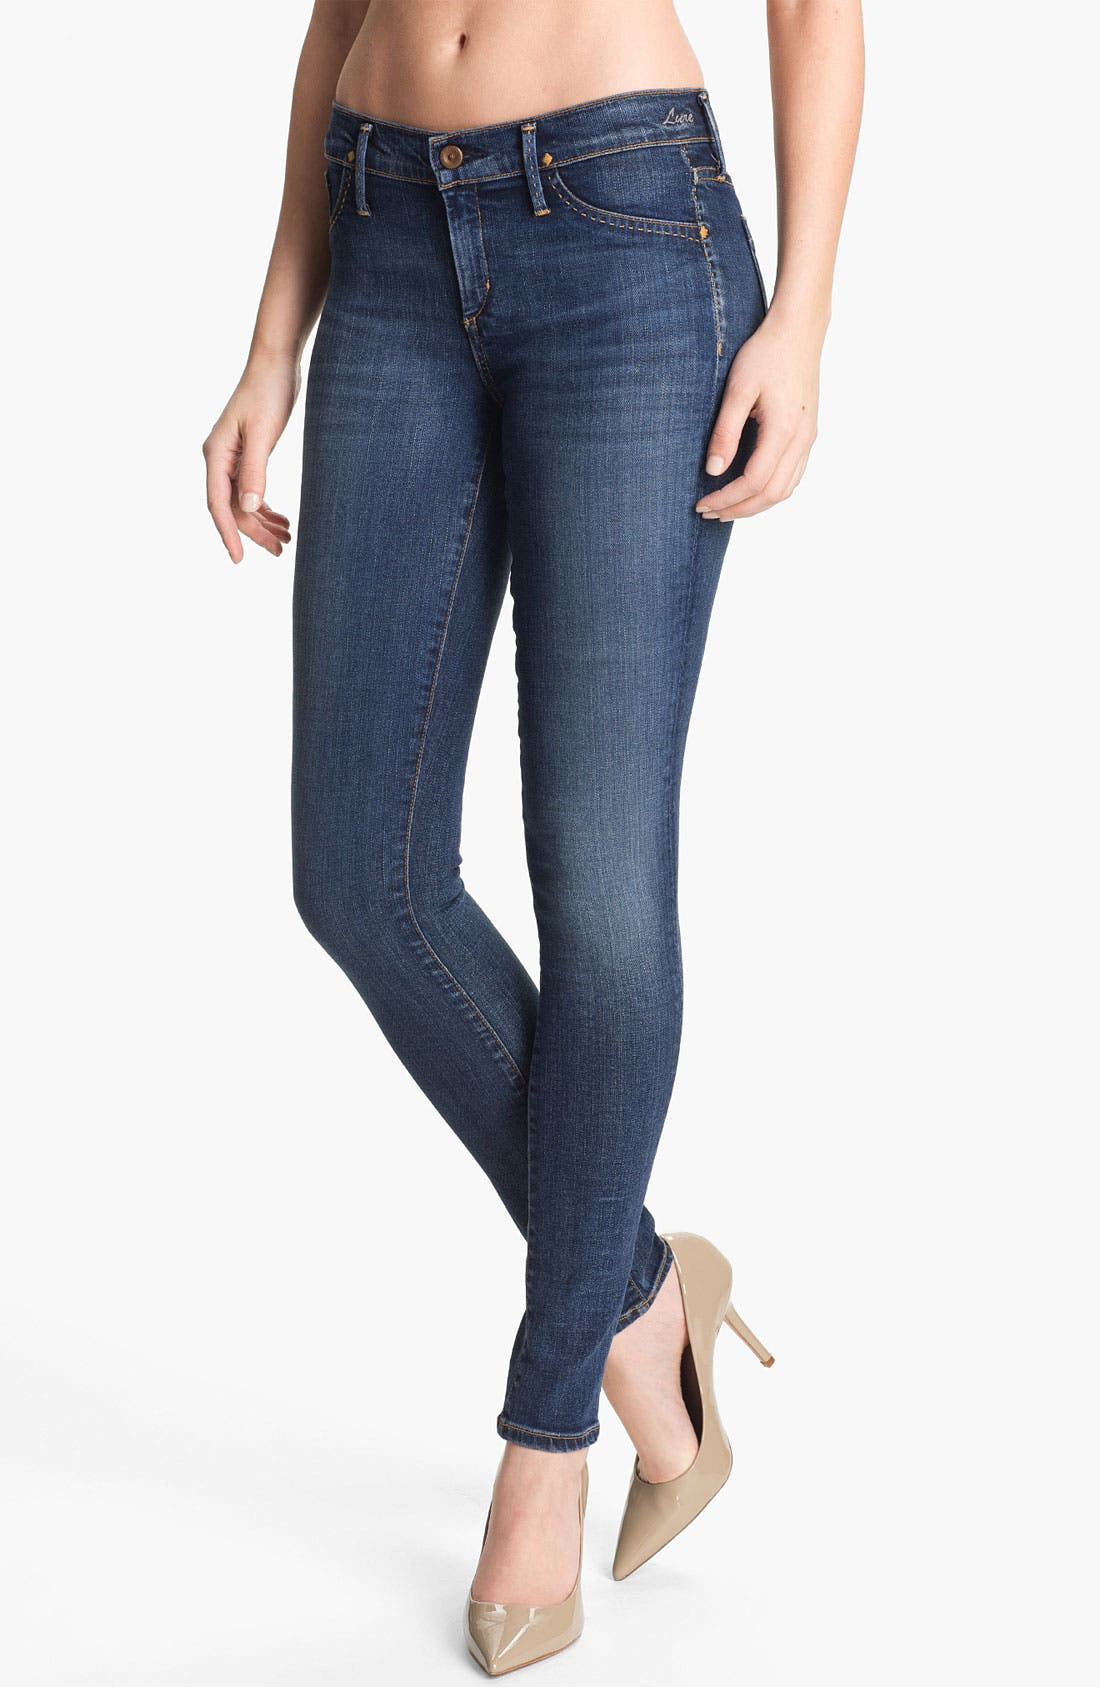 Alternate Image 1 Selected - Goldsign 'Lure' Skinny Stretch Jeans (Zagir)